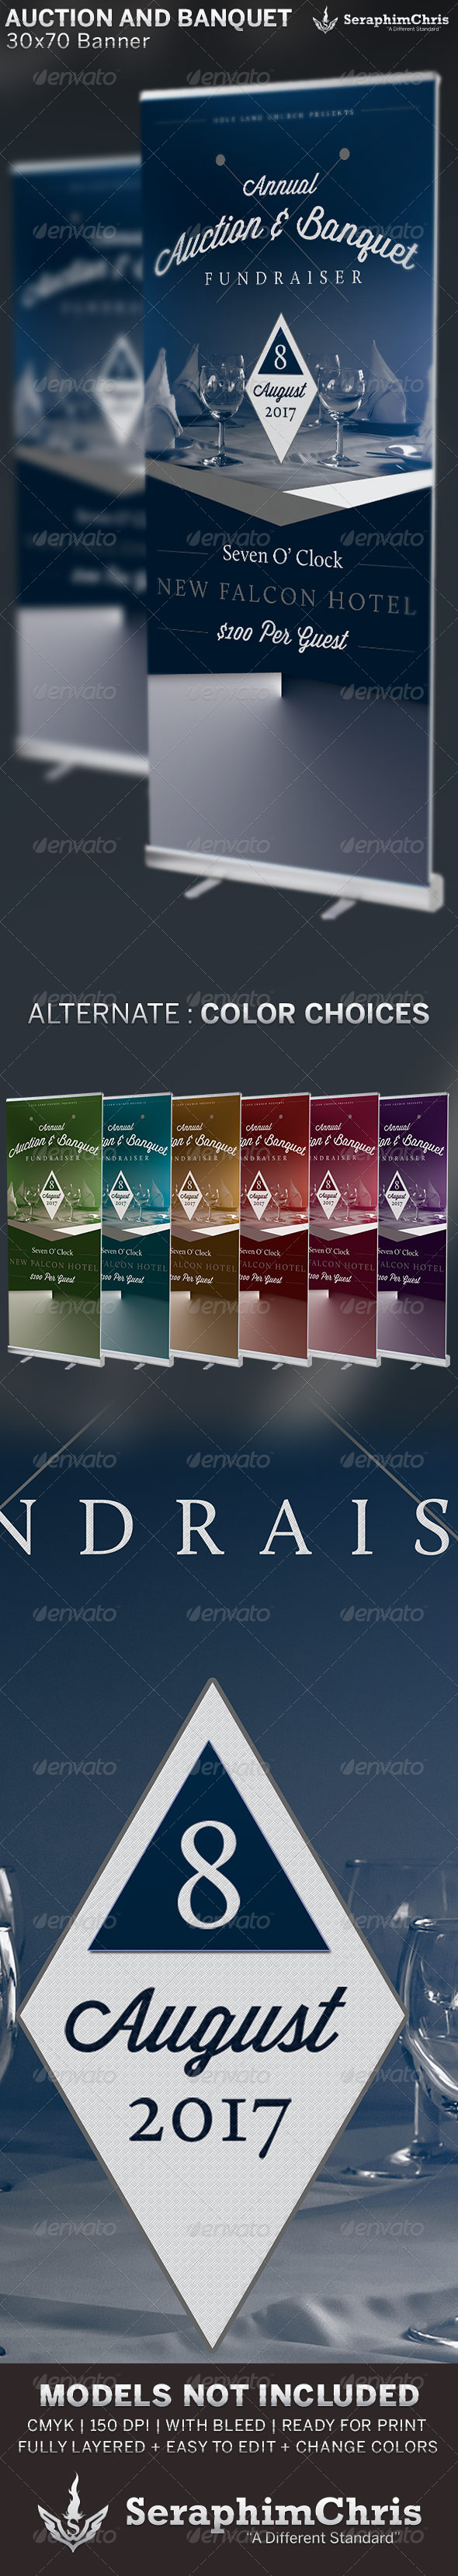 Auction and Banquet Fundraiser: Banner Template - Signage Print Templates